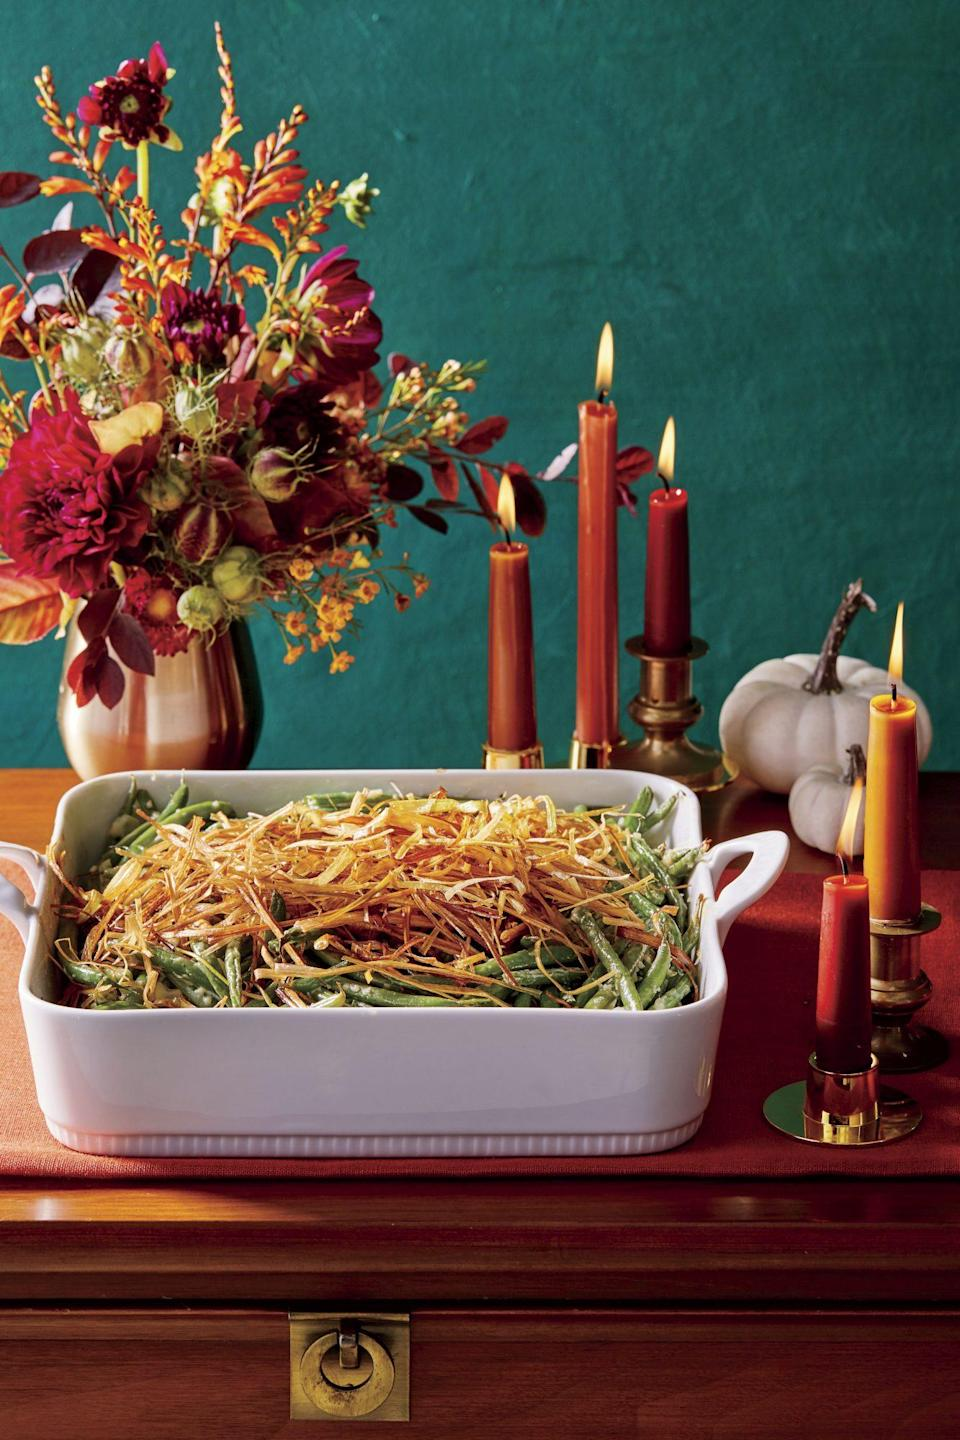 """<p><strong>Recipe: <a href=""""https://www.southernliving.com/recipes/homemade-green-bean-casserole-with-leeks"""" rel=""""nofollow noopener"""" target=""""_blank"""" data-ylk=""""slk:Green Bean Casserole with Crispy Leeks"""" class=""""link rapid-noclick-resp"""">Green Bean Casserole with Crispy Leeks</a></strong></p> <p>This updated take on classic green bean casserole deserves a spot on your table this season. Crispy leeks on top set it off in a way store-bought fried onions never could. </p>"""